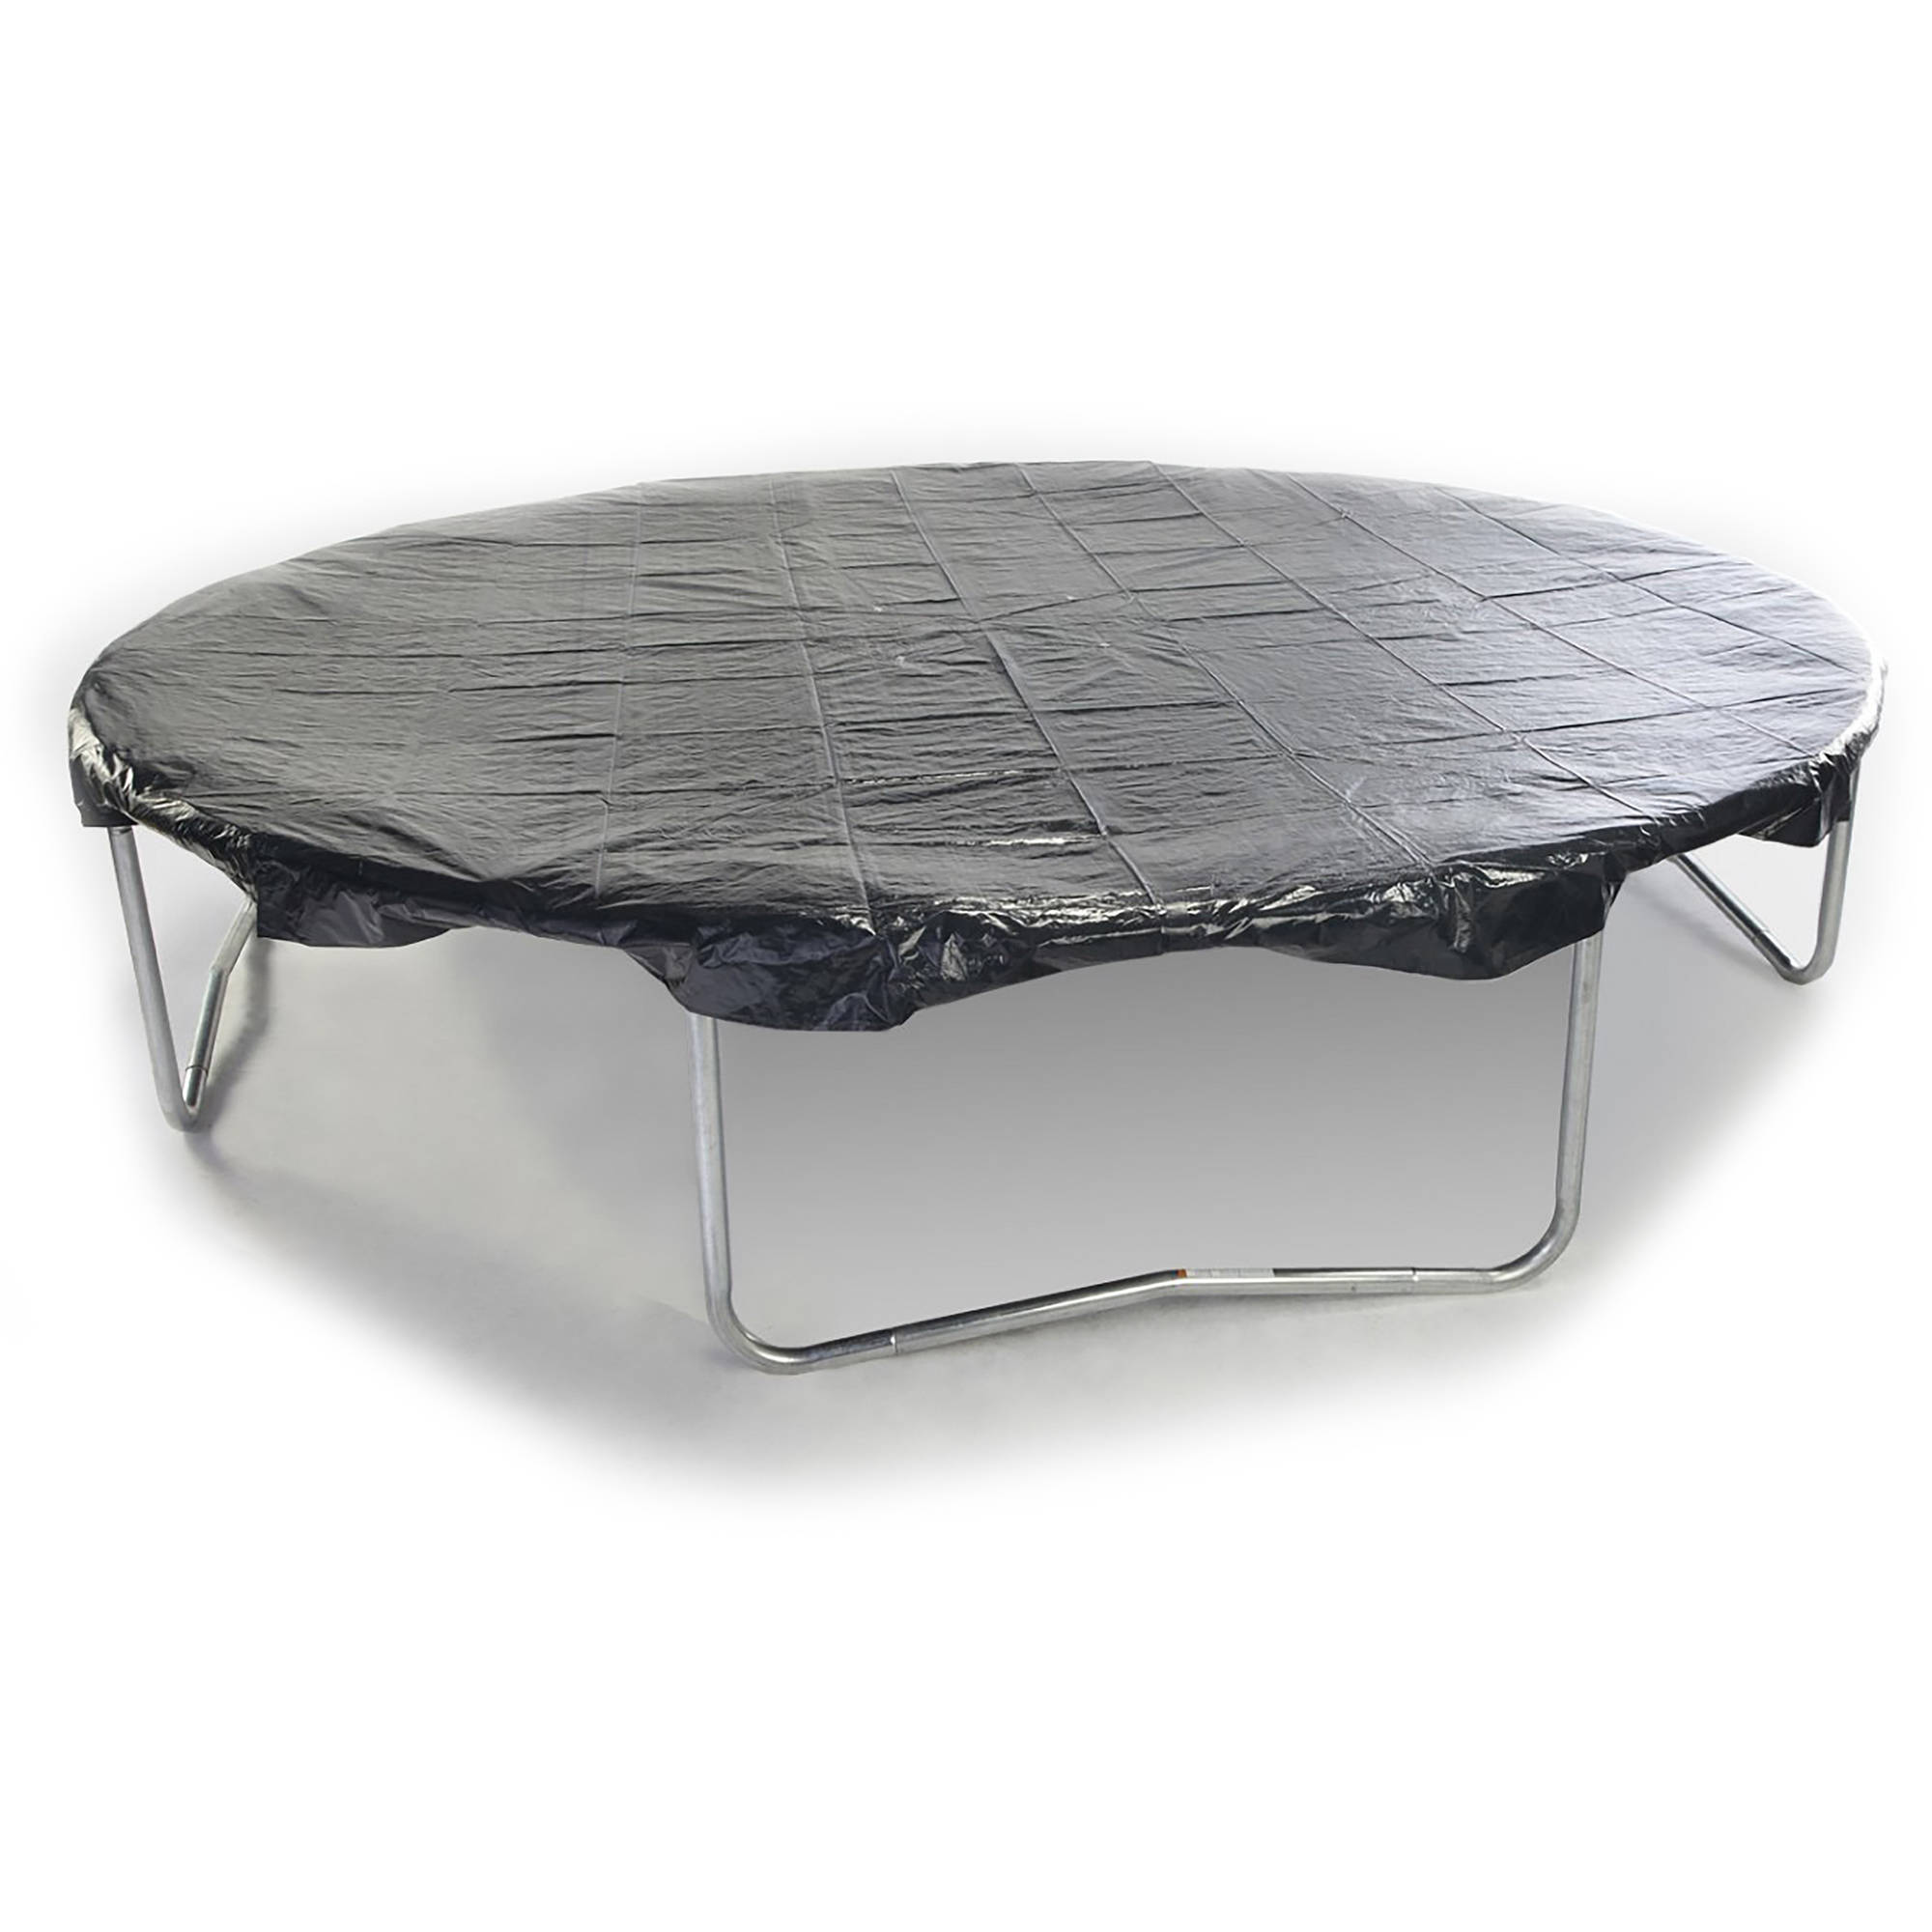 JumpKing 12 ft. Black Trampoline Protective Weather Cover â Accessory for Round Trampolines Fits 12 ft.